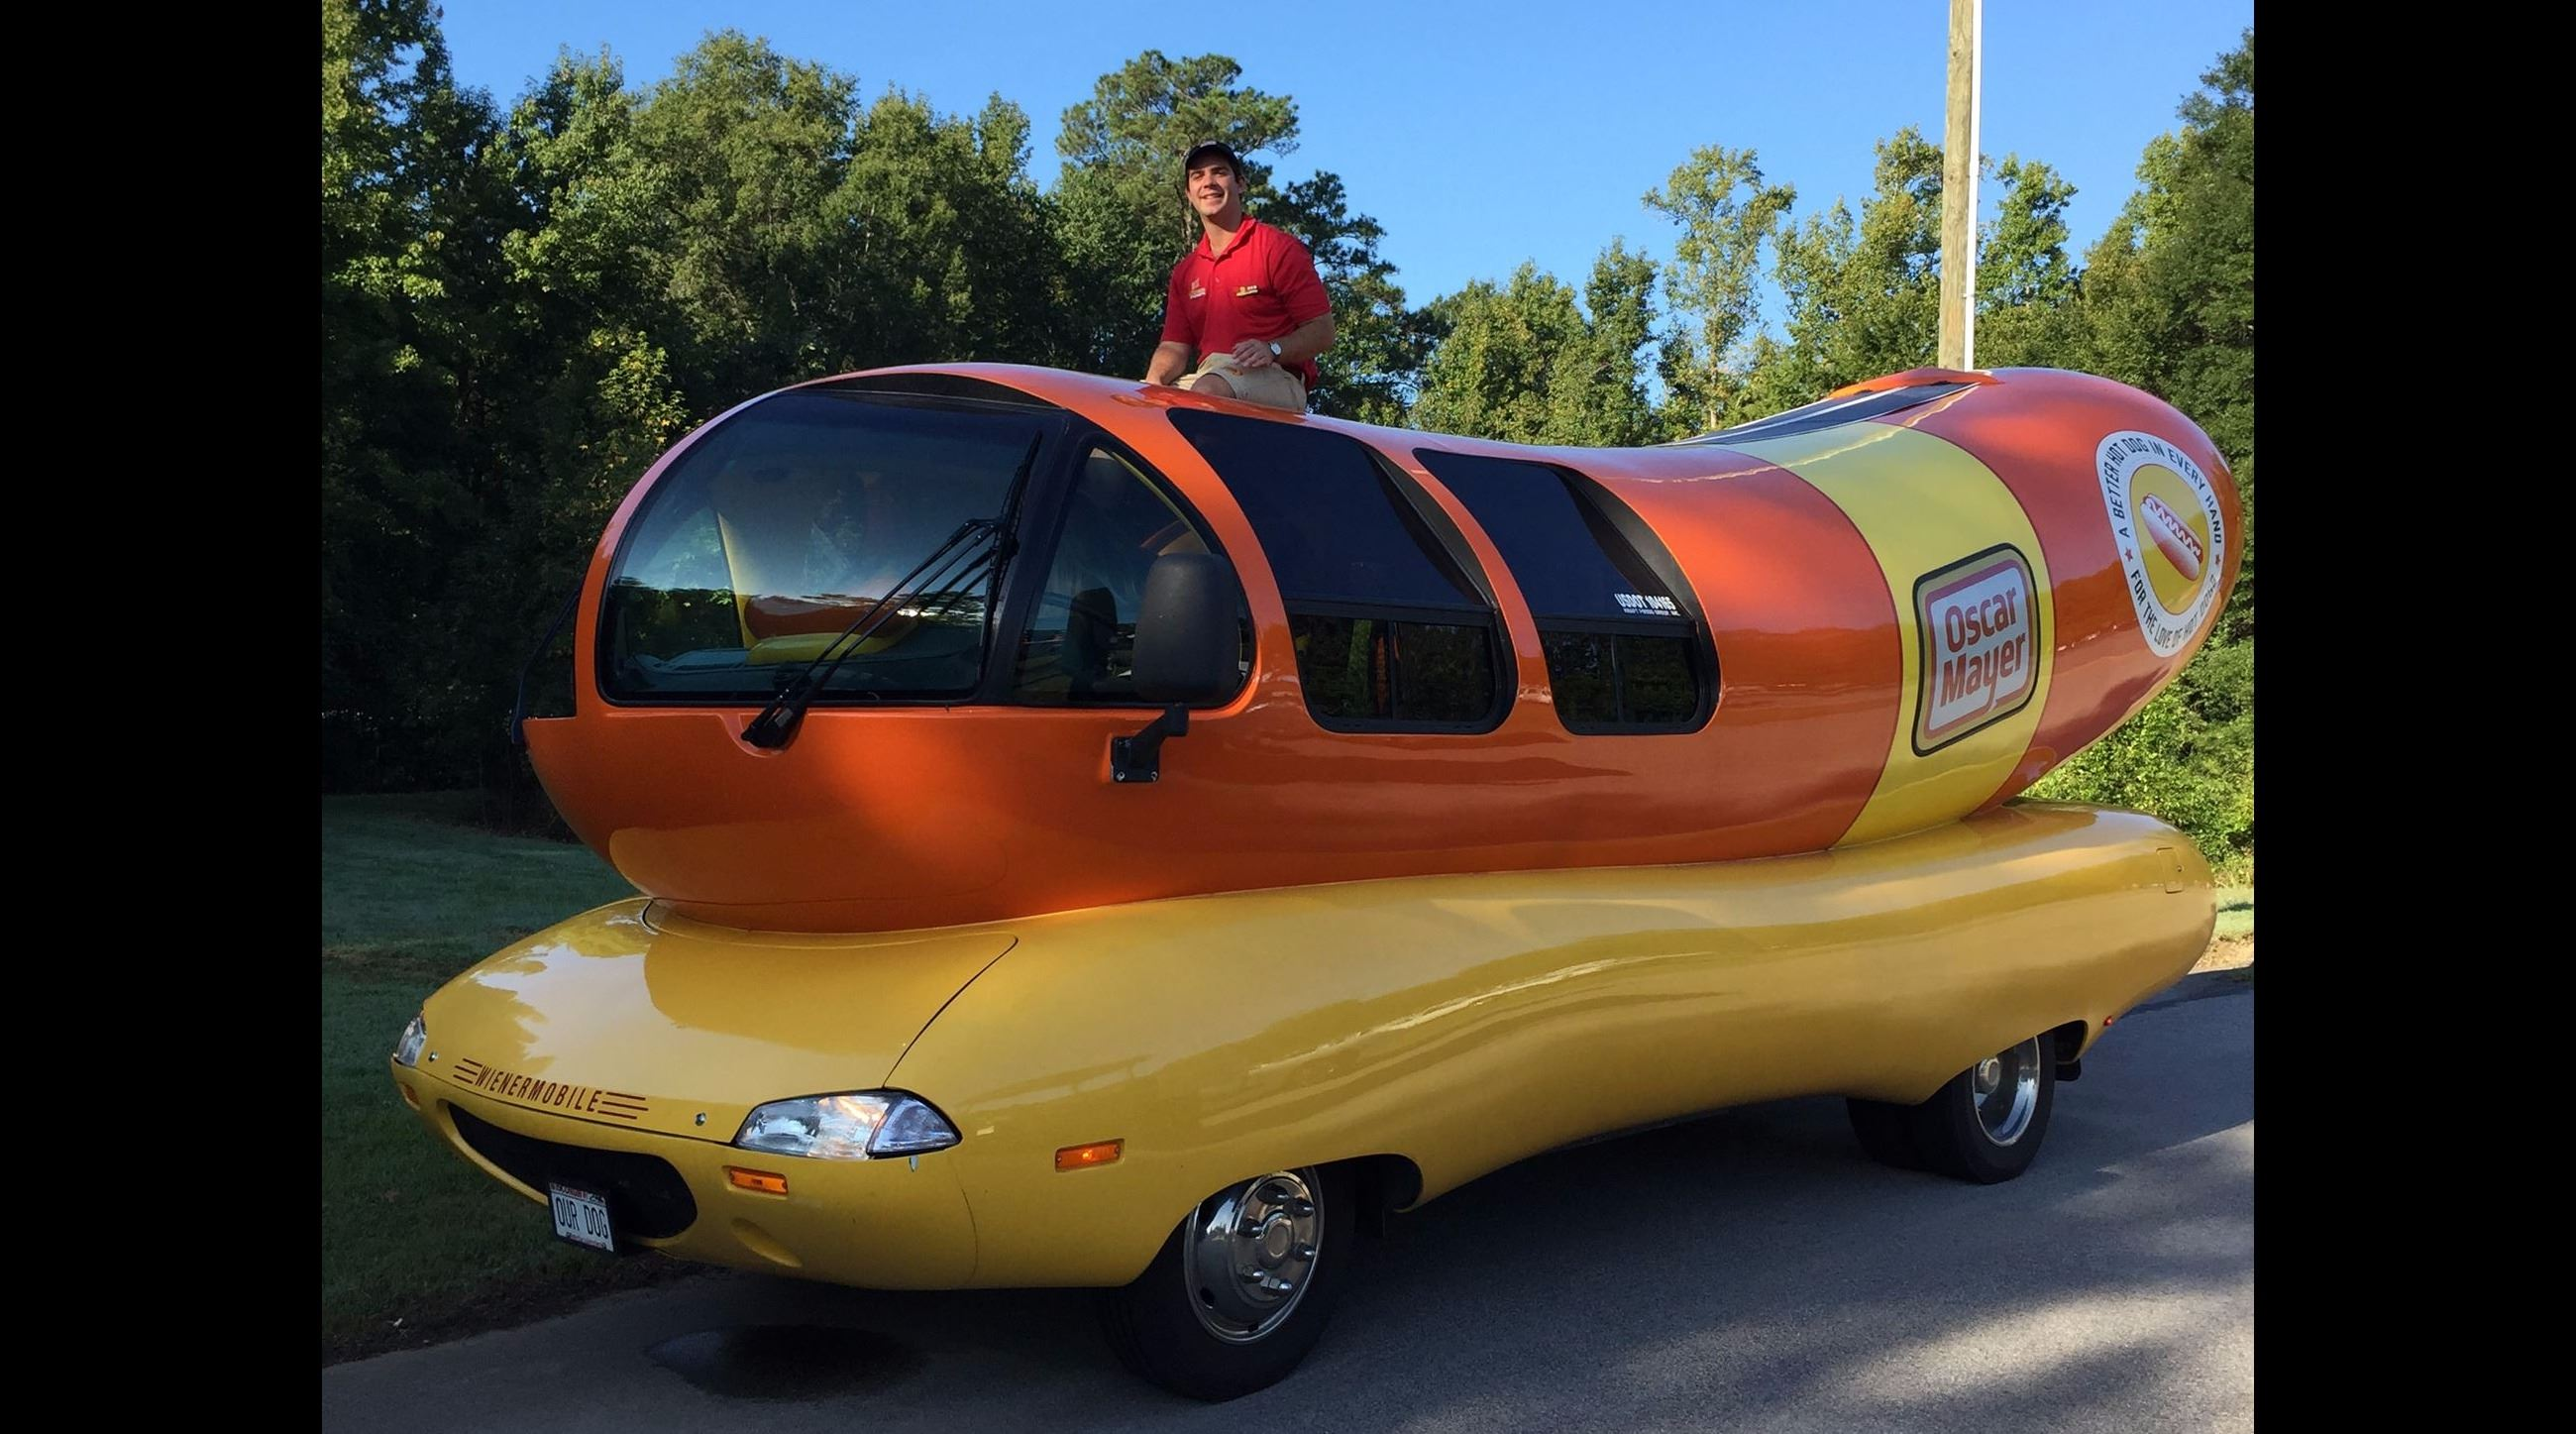 Oscar Meyer Wiener Mobile